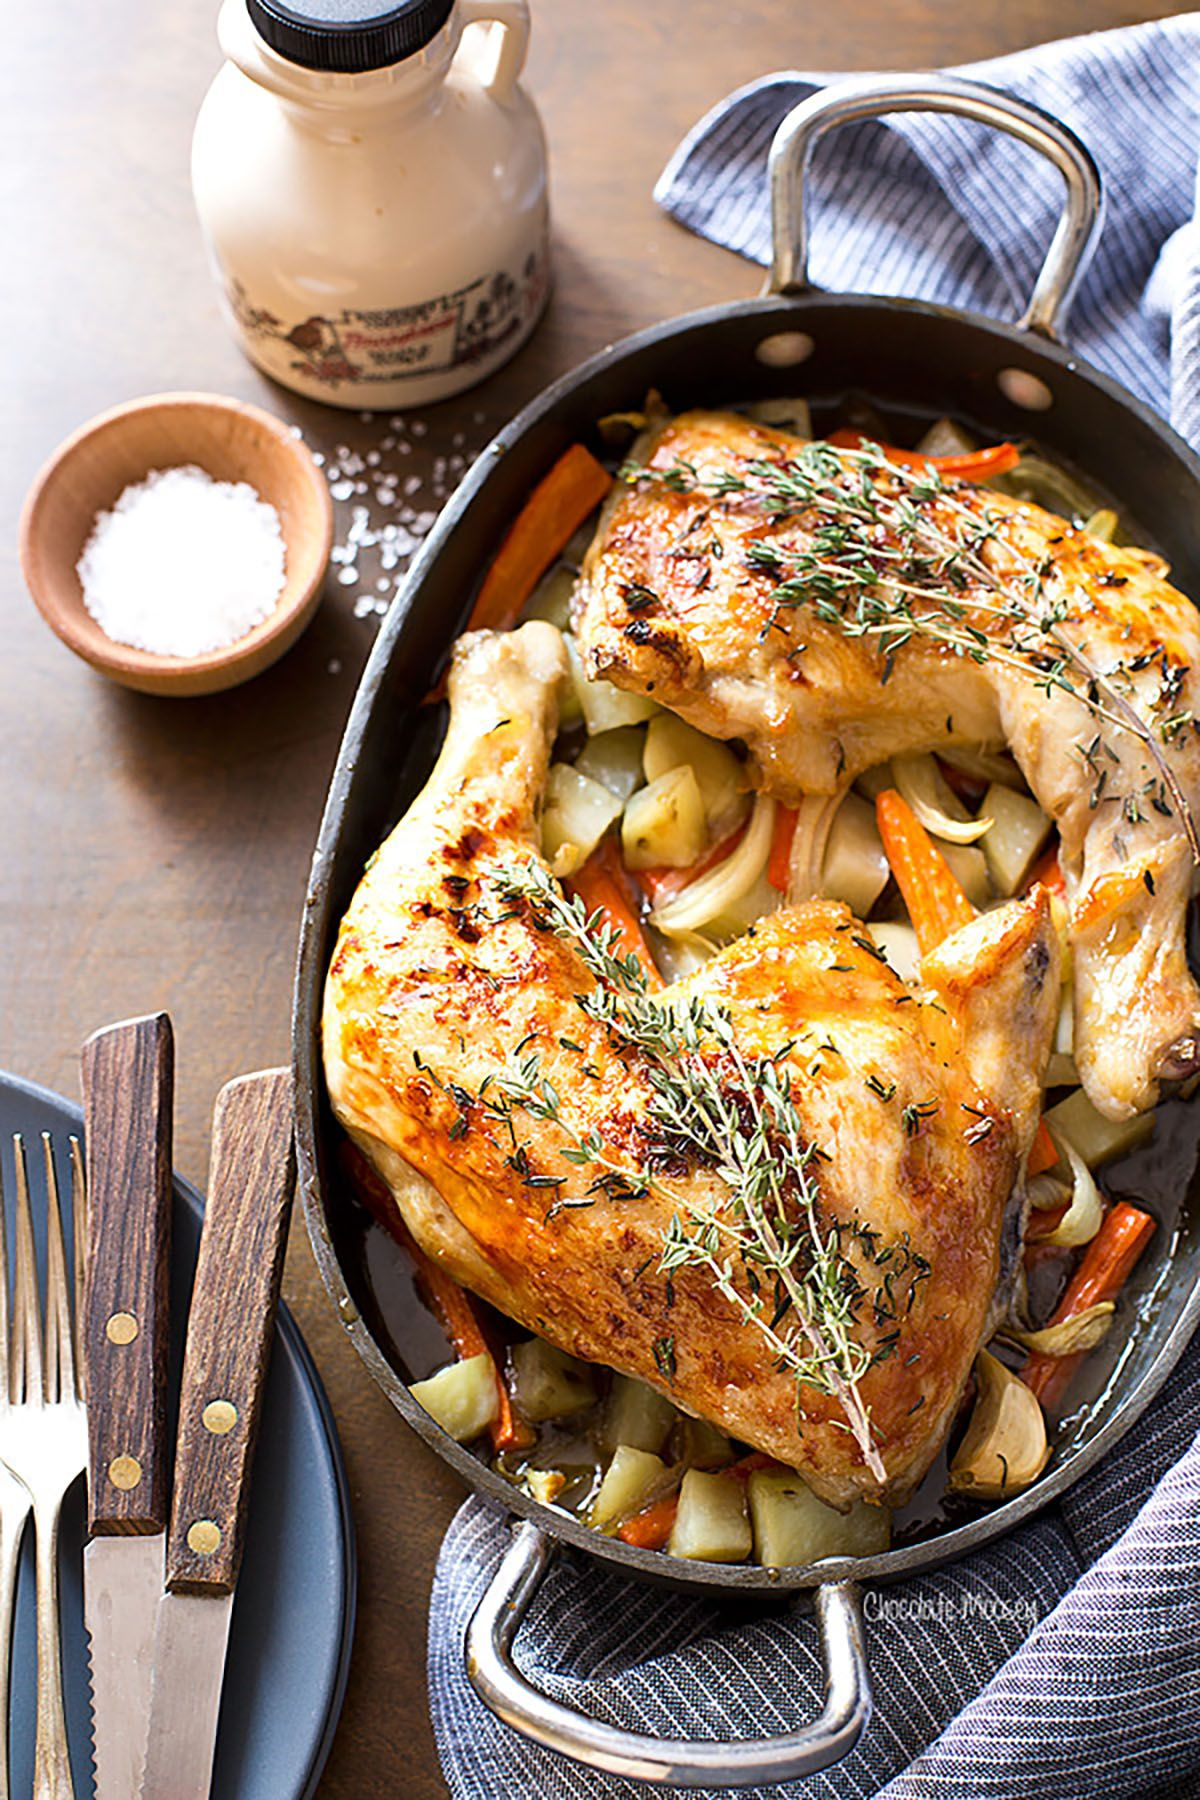 Romantic dishes to cook for two